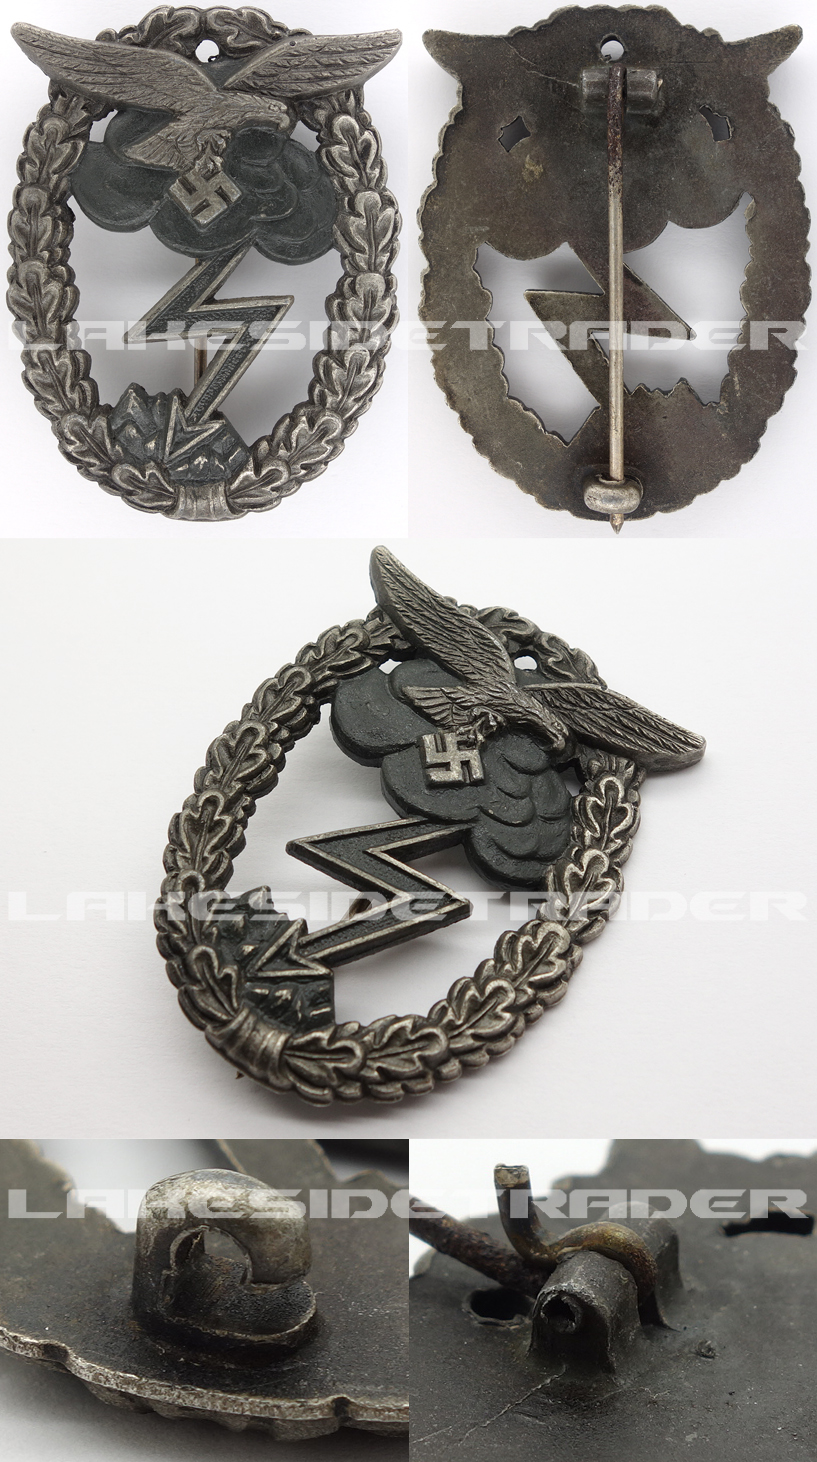 Ground Combat Badge by Arno Wallpach